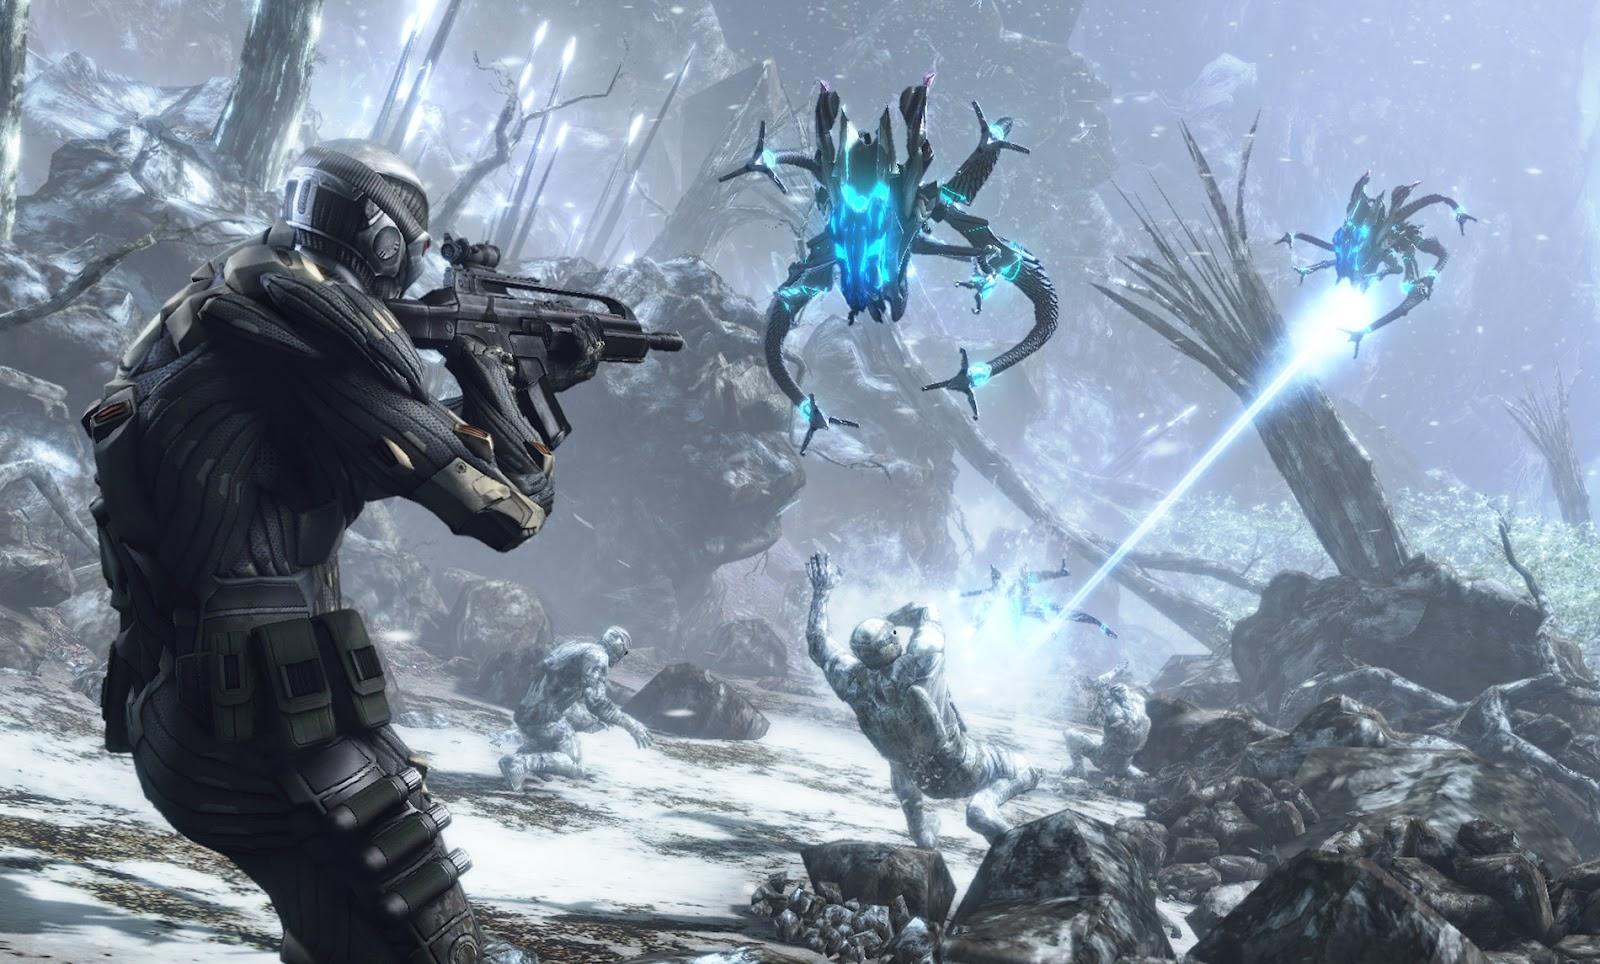 http://4.bp.blogspot.com/-2U75OoCSIKs/UAUYrcDfPUI/AAAAAAAABNk/TzzgP1MMgaY/s1600/crysis+aliens+wallpaper+background+crytek+frankfurt+fps+first+person+shooter.jpg